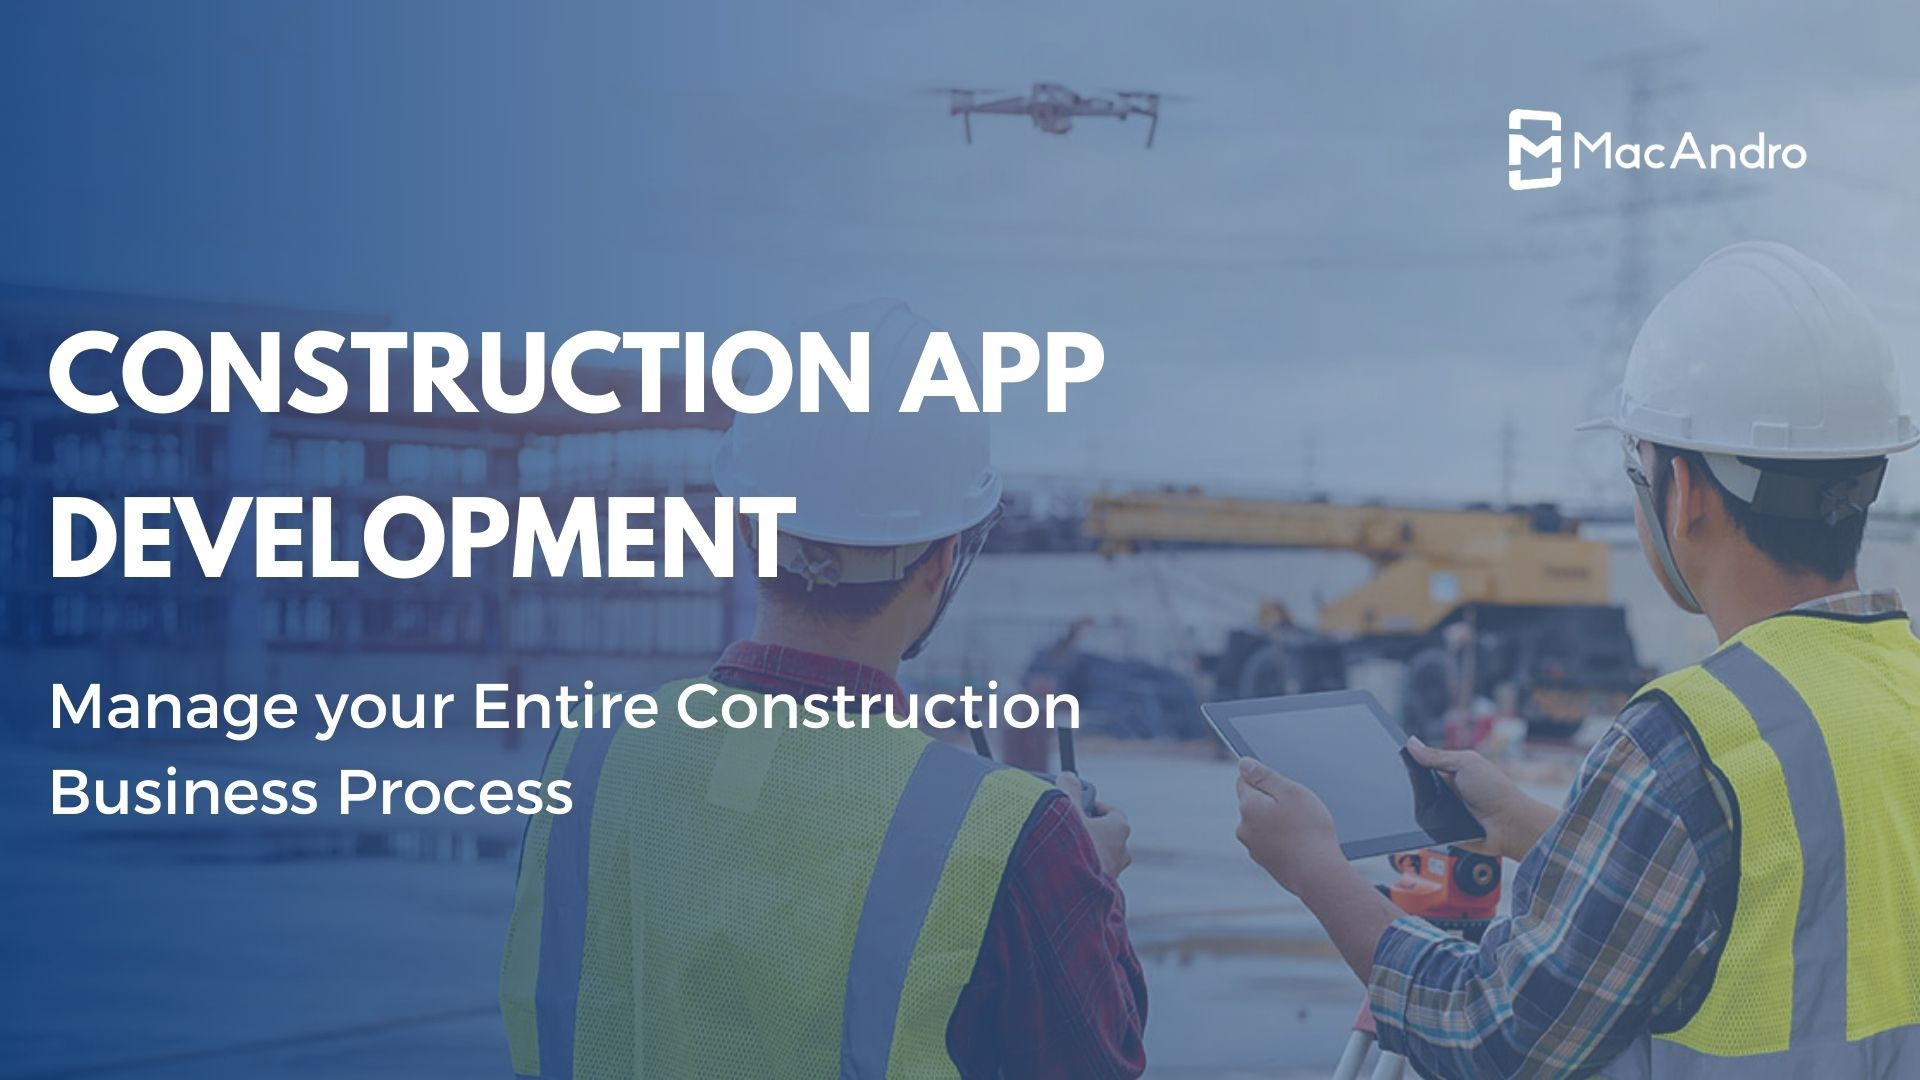 Construction App Development - A Simplified Solution To Manage All Your Construction Process